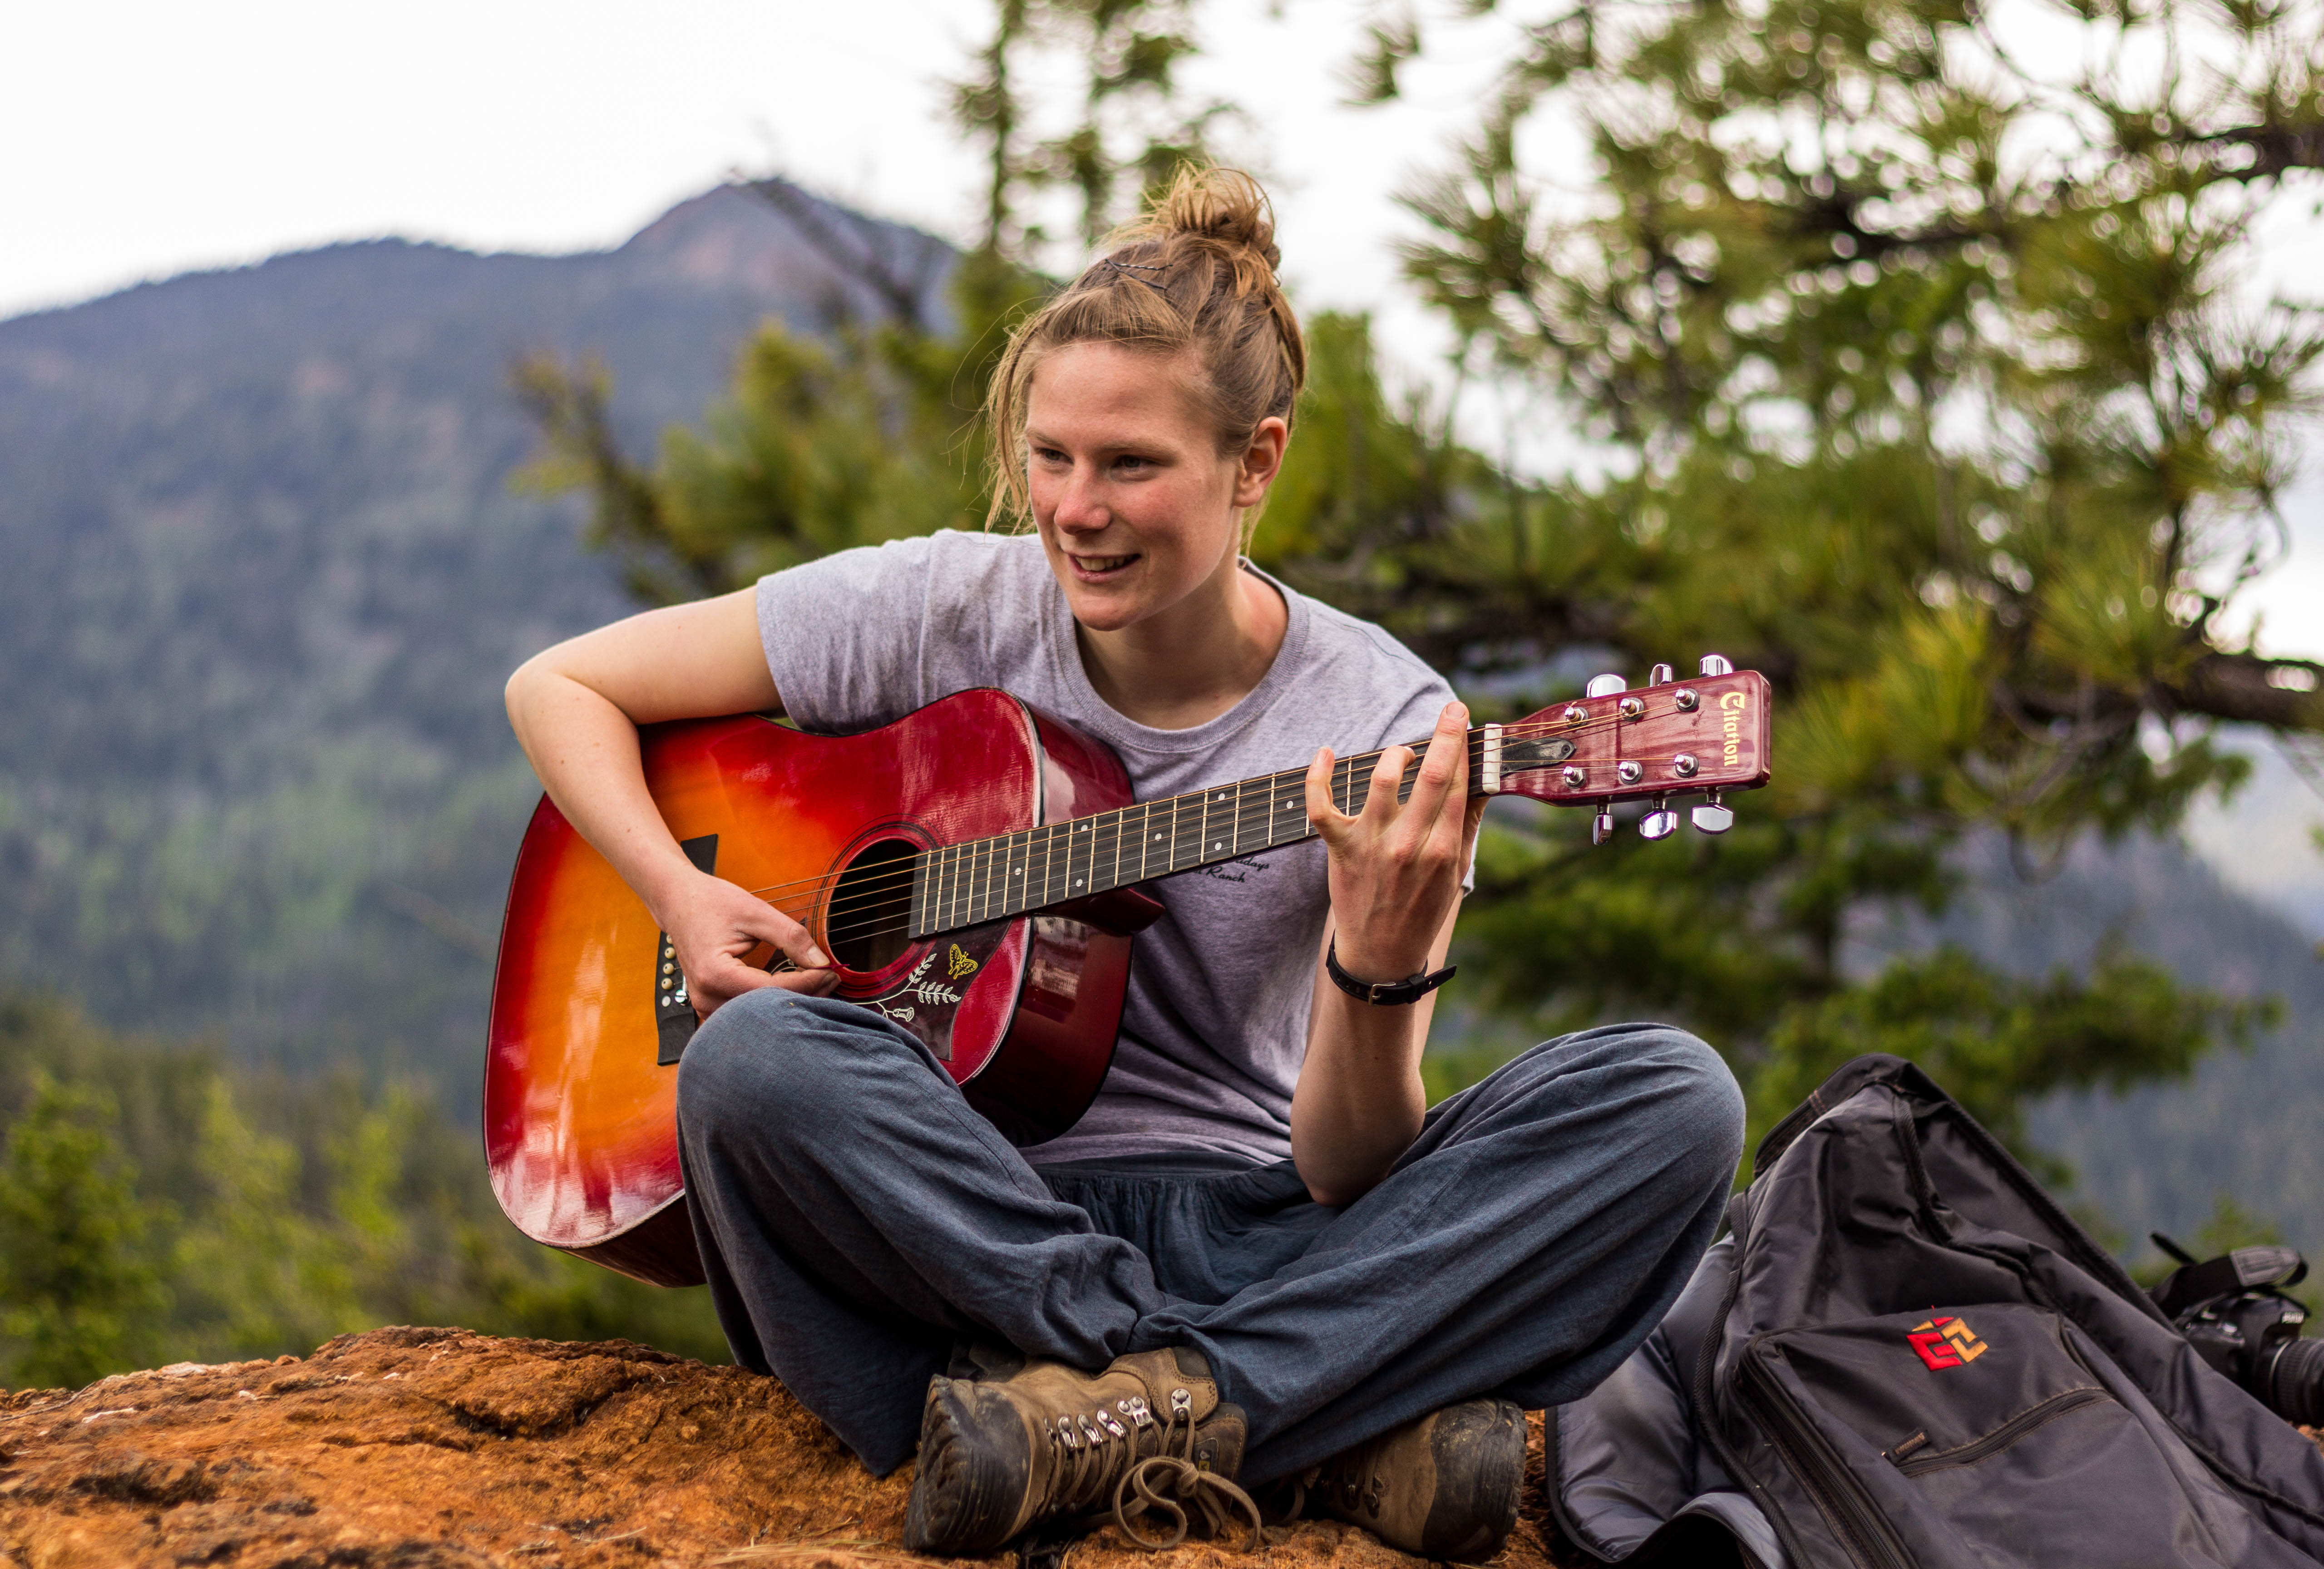 Lea playing the guitar at the Pearson's Lookout